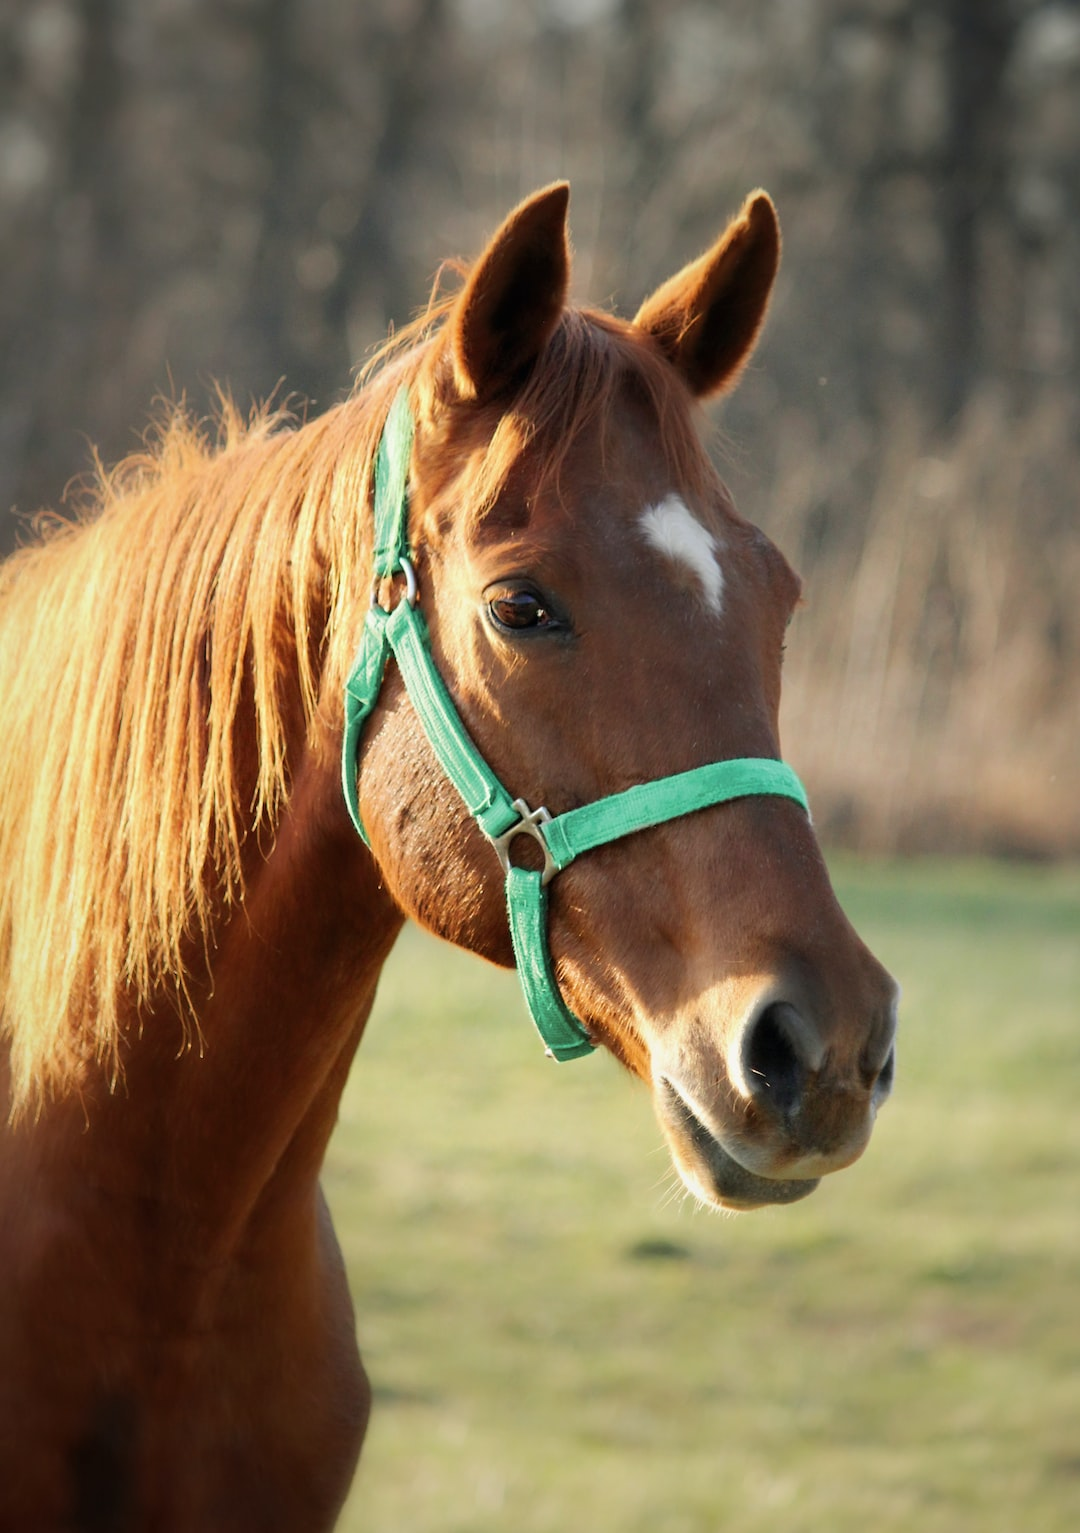 A thoroughbred horse in a mint halter stands in a field.